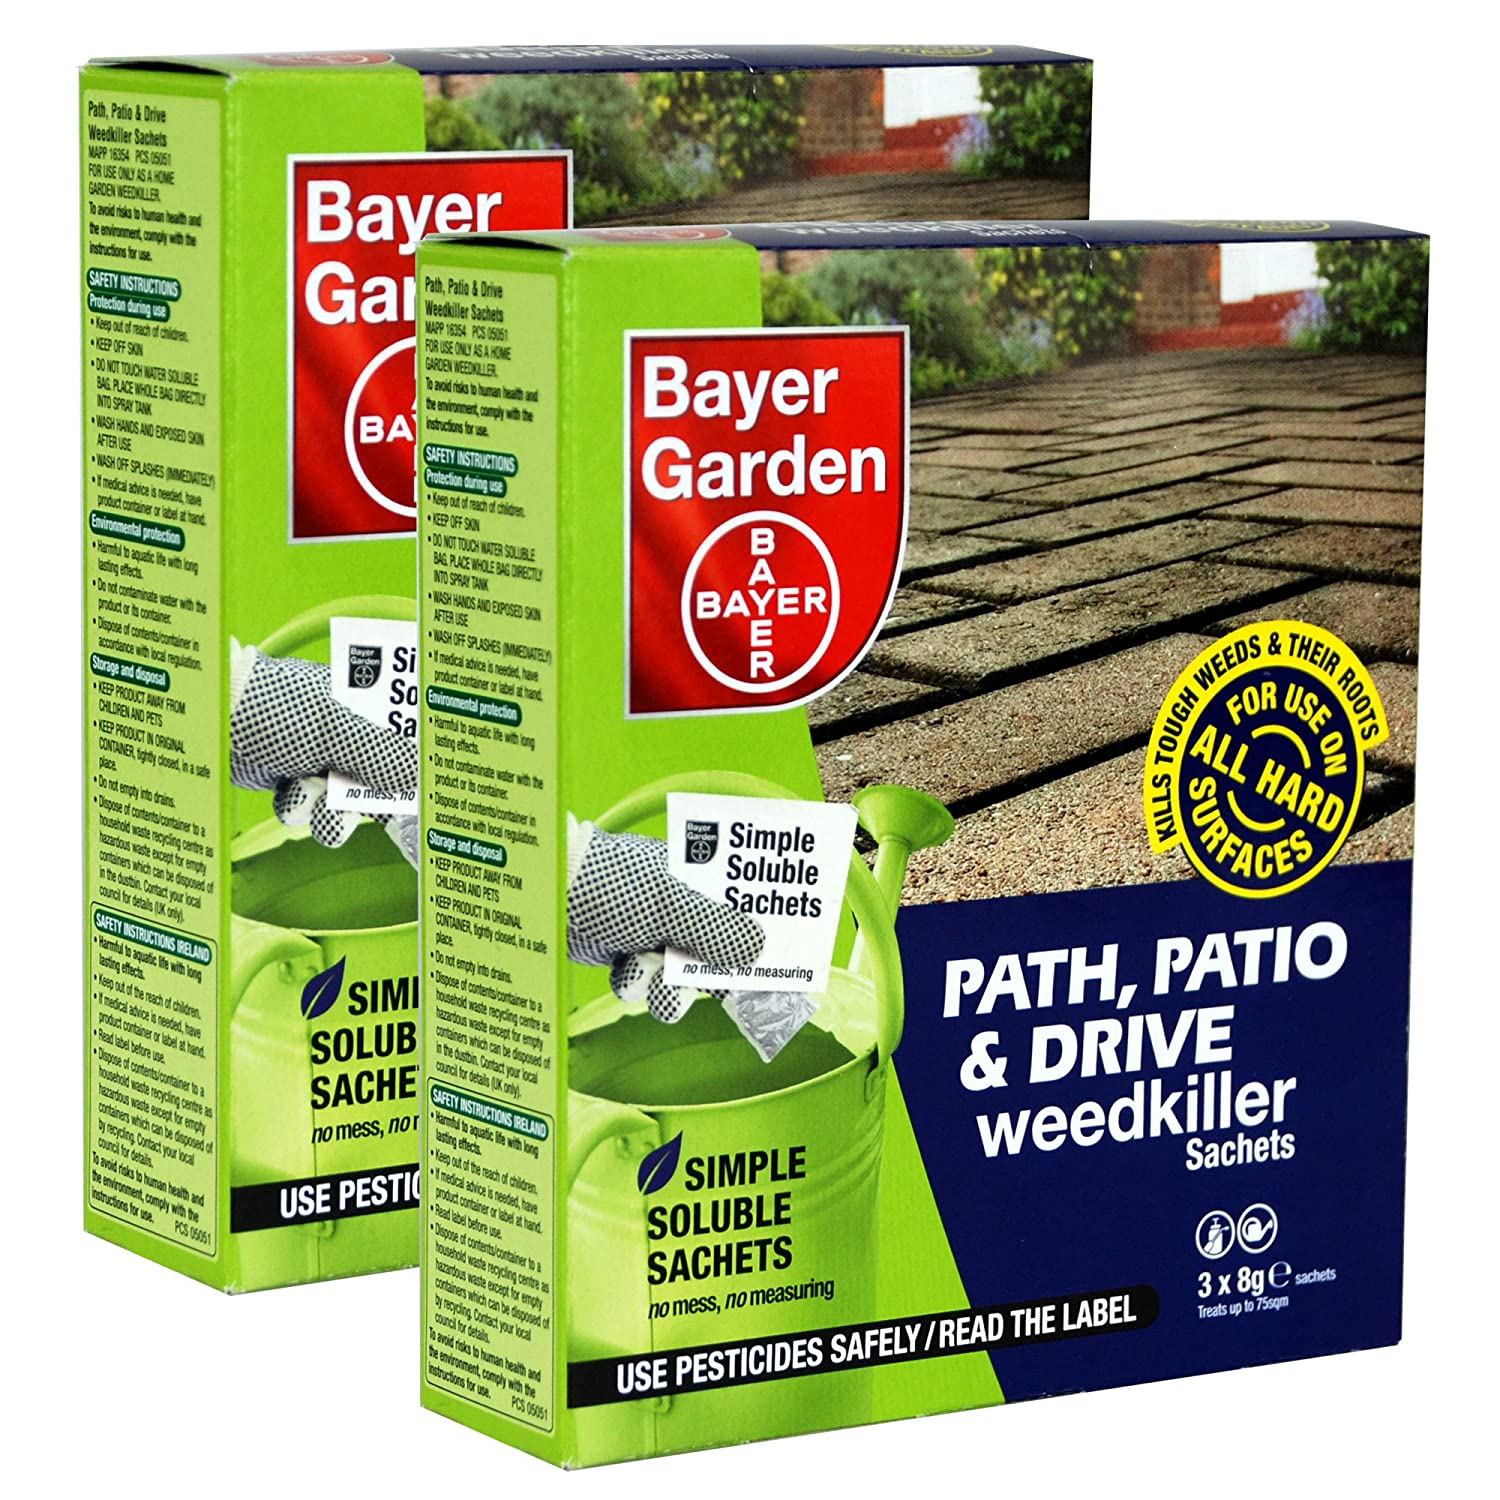 Bayer Garden 2 x Path, Patio & Drive Weed Killer - 3 x 8g Sachets per pack treats upto 75sqm - Kills Ground Elder, Nettles, Docks, Couch Grass & Japanese Knotweed.